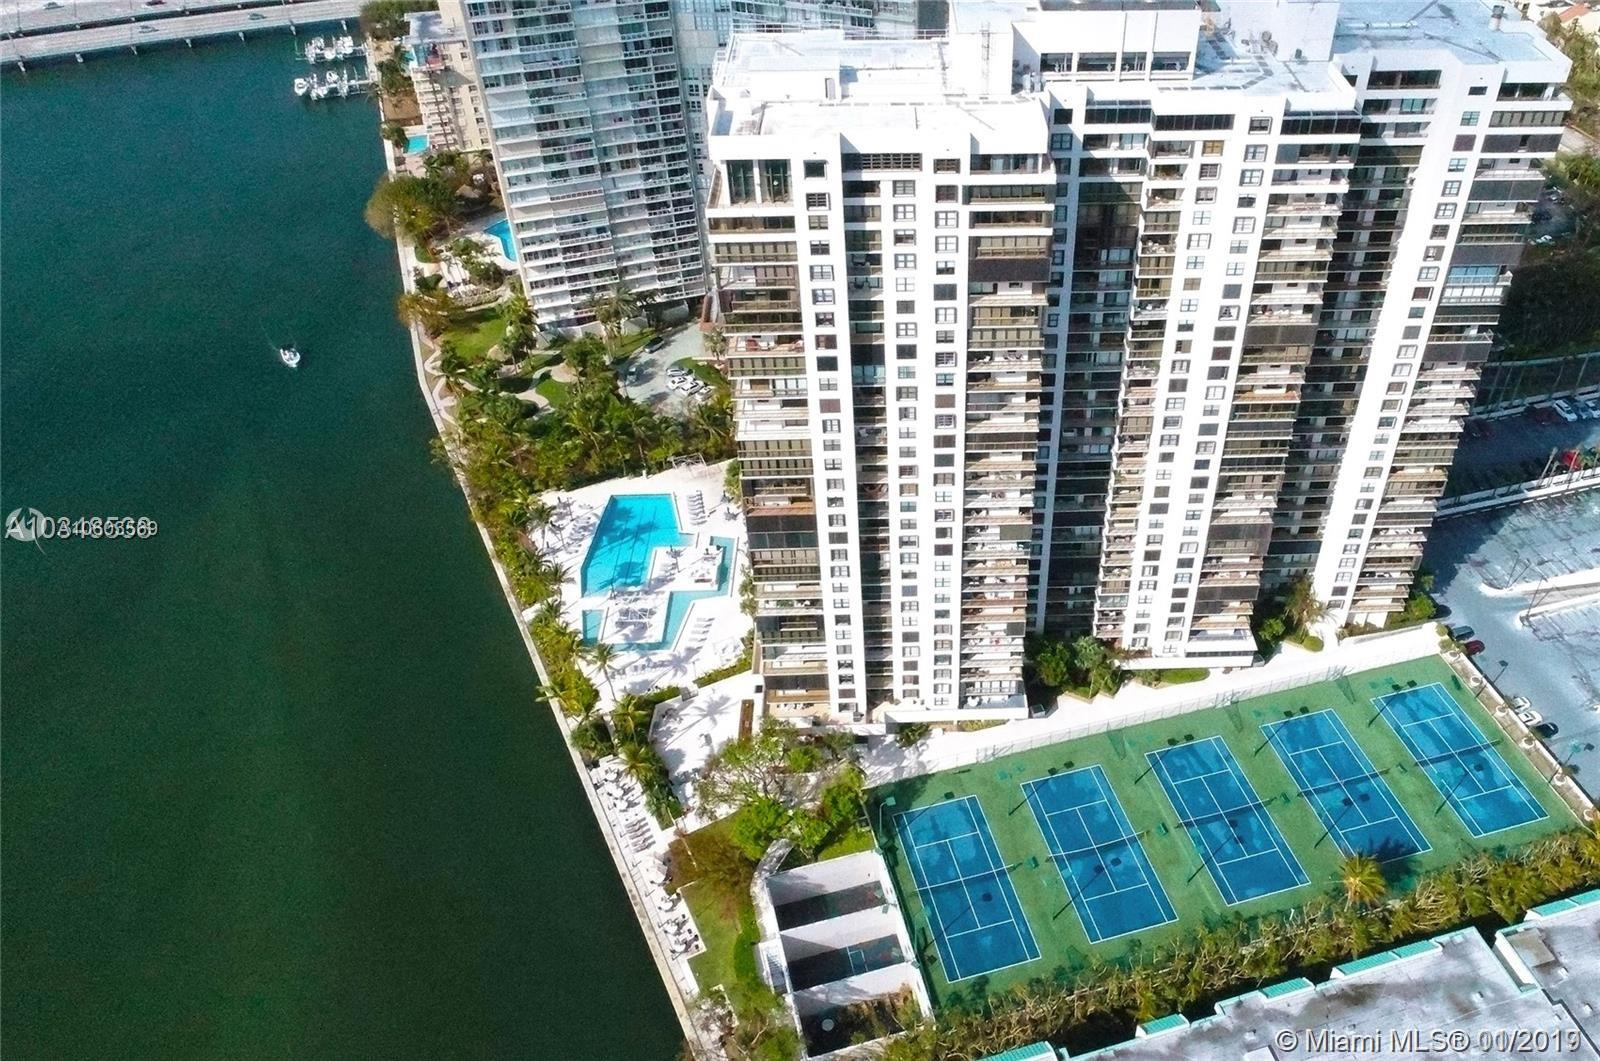 Brickell Bay Club image #3